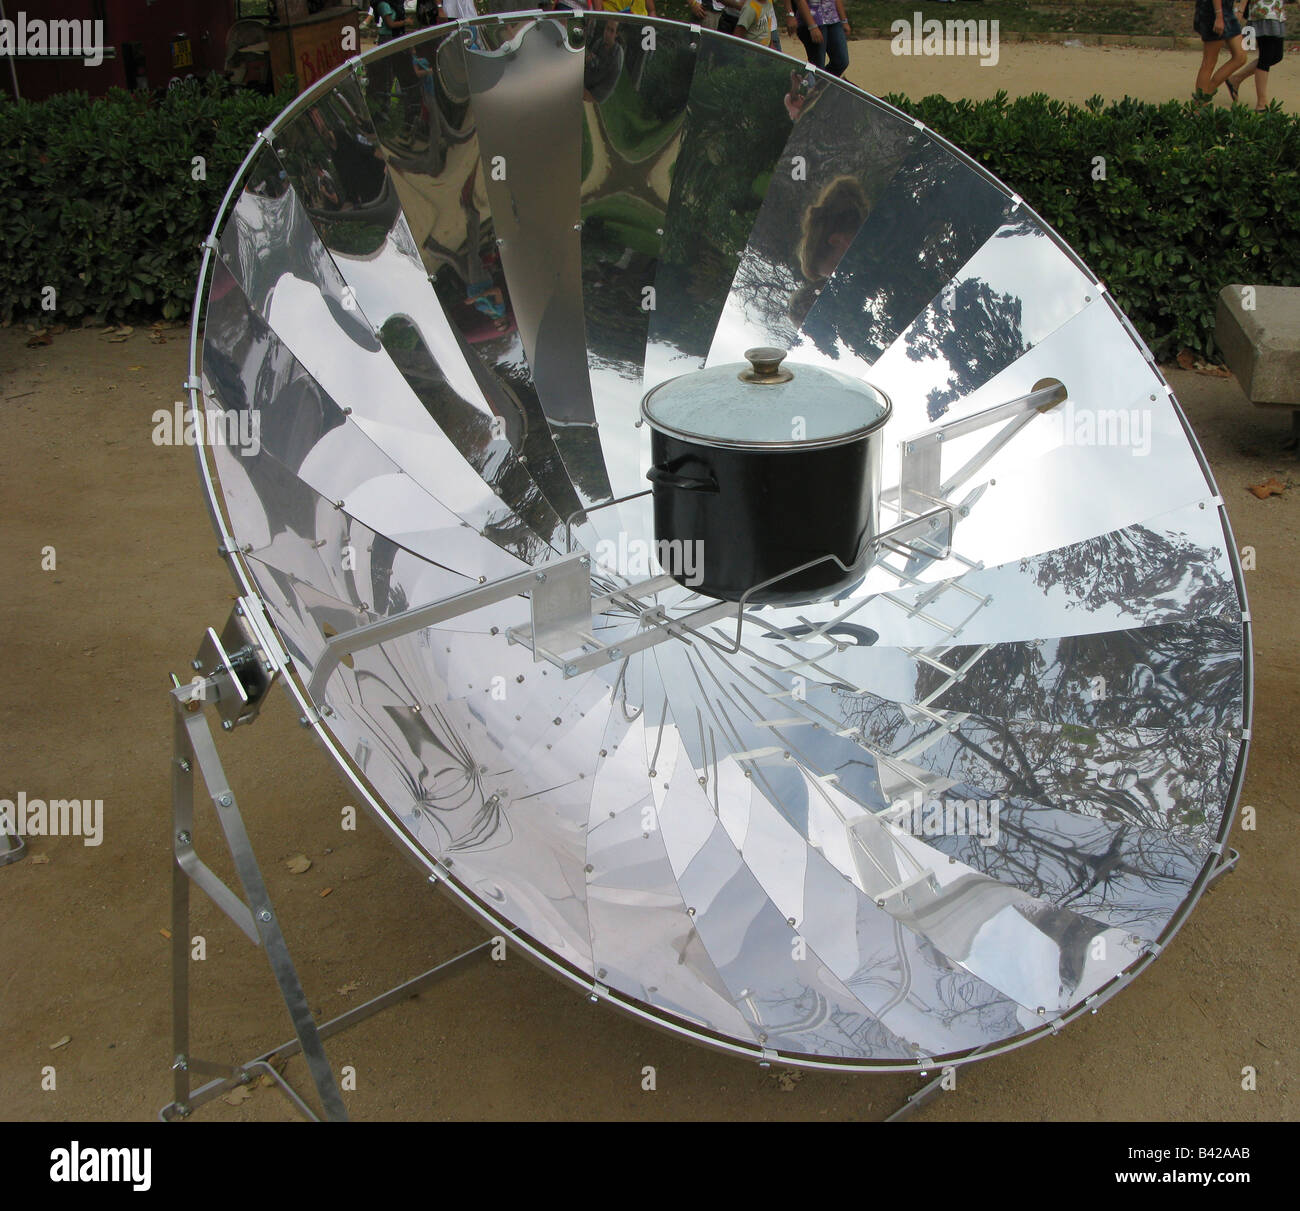 solar energy cooking boil - Stock Image